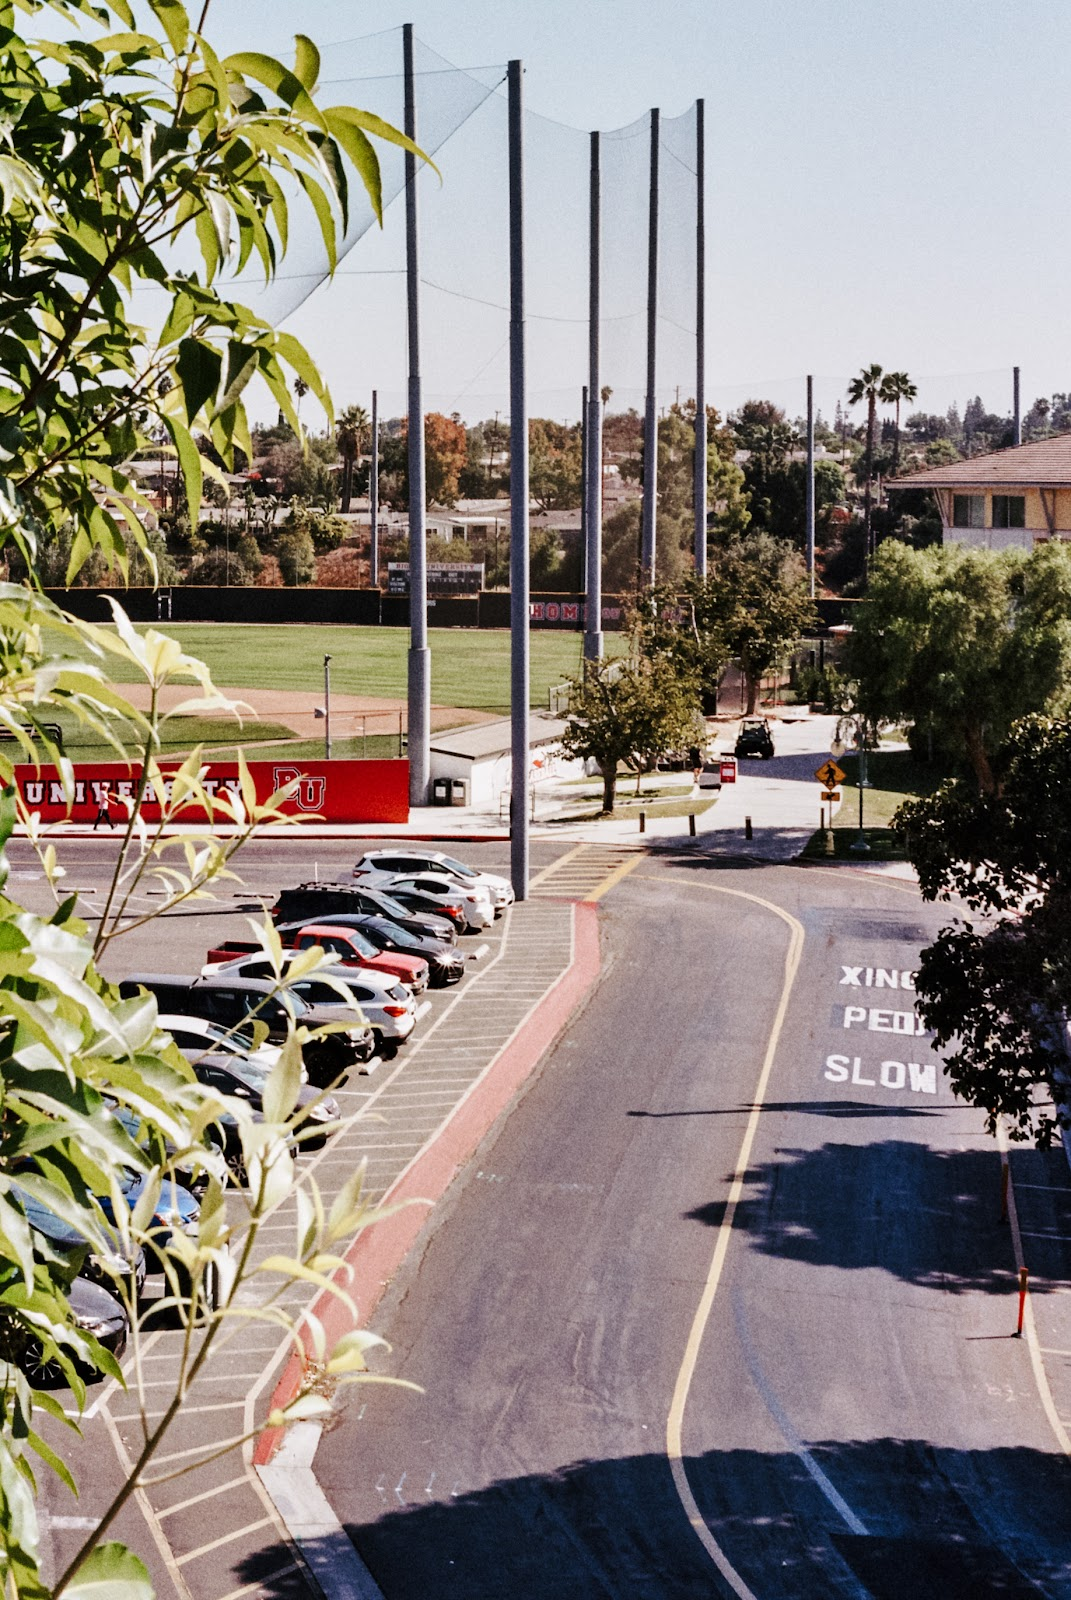 looking over the baseball fields on Biola's campus